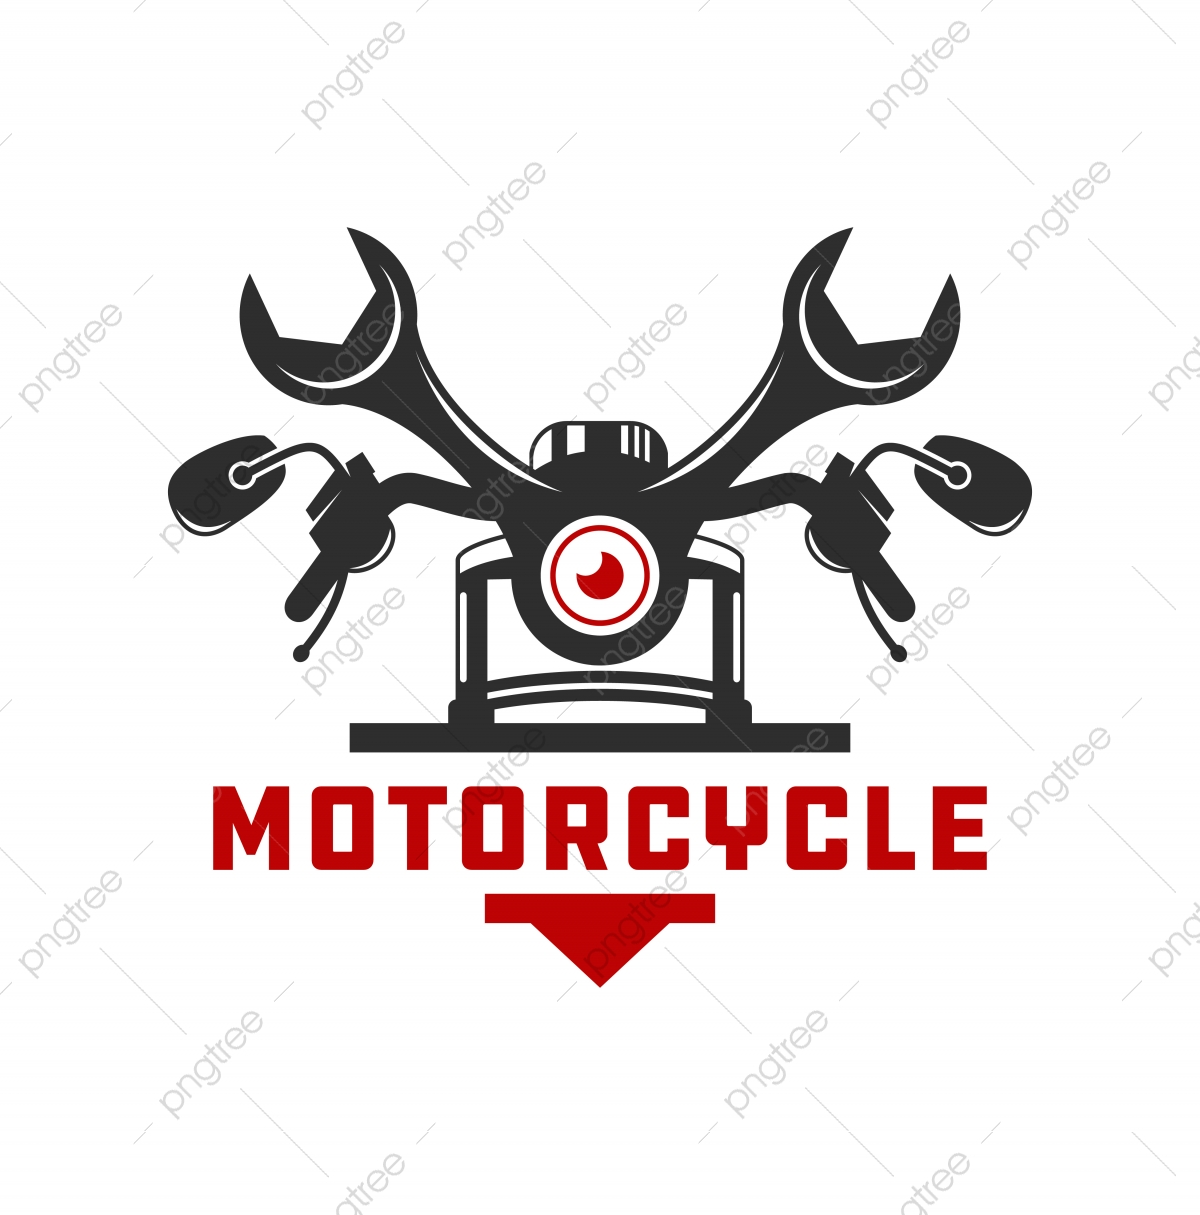 Motorcycle Repair Logo Design Template Download On Pngtree